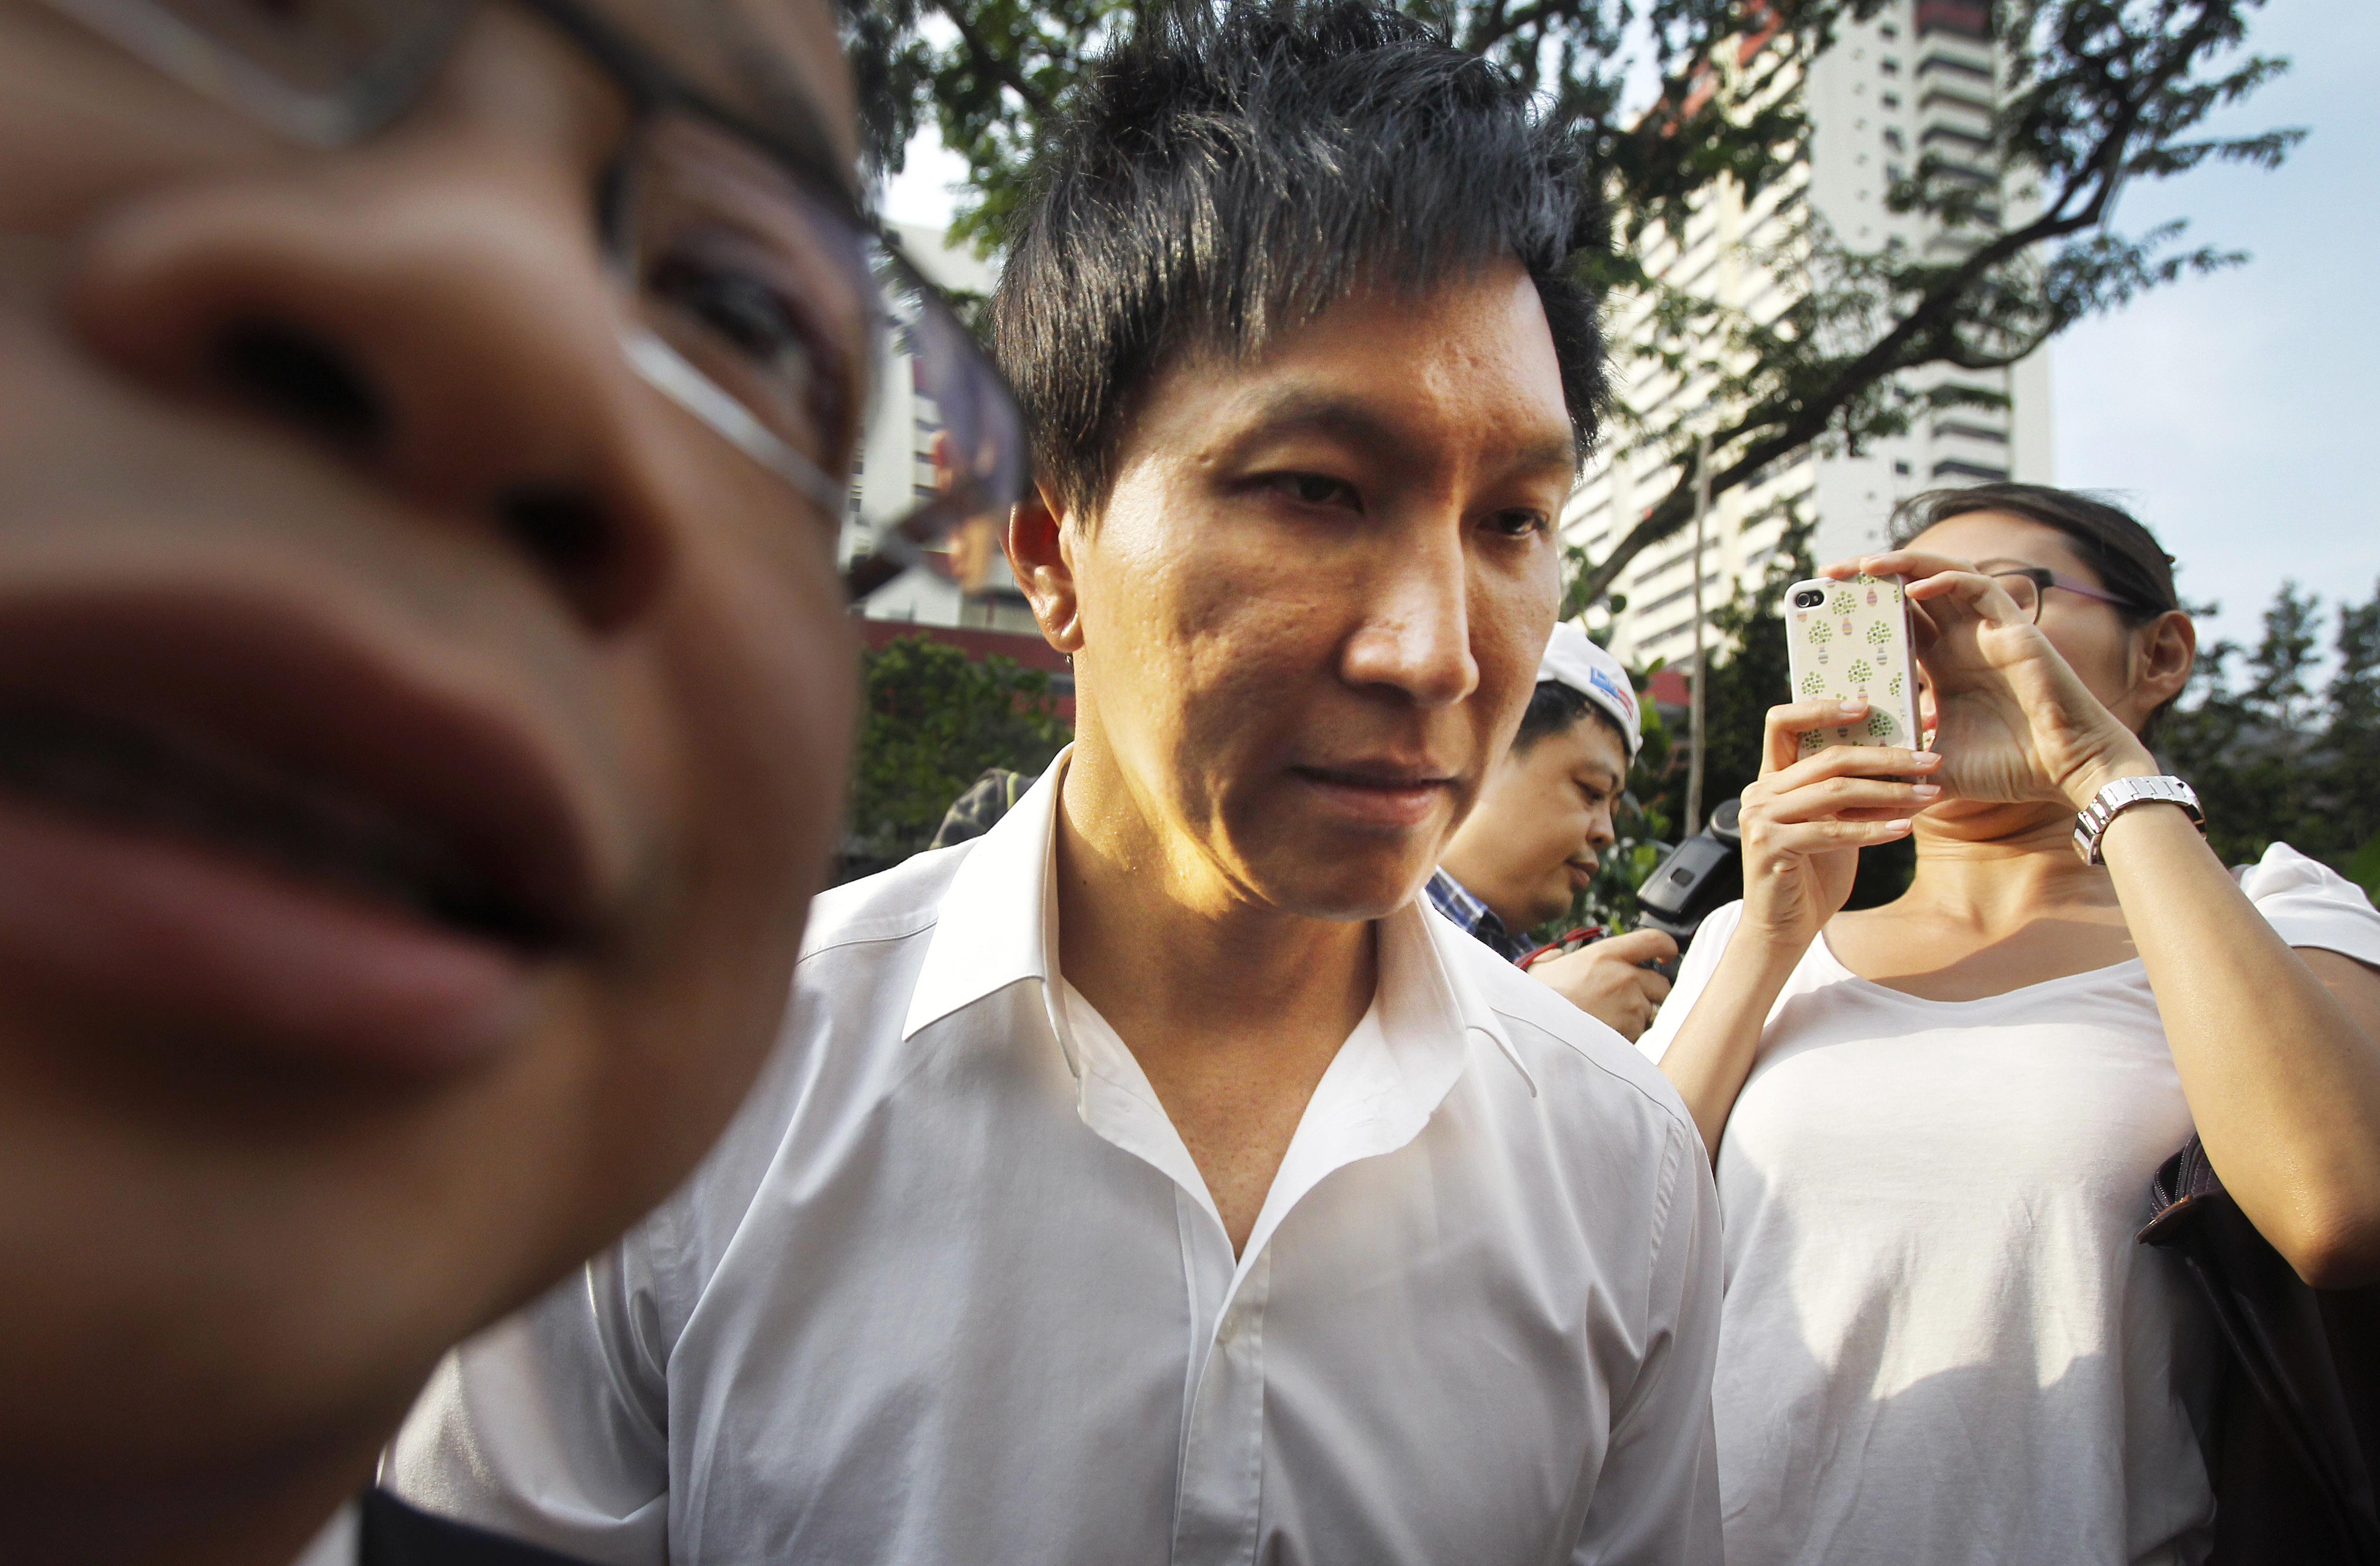 In this July 12, 2012, photo, City Harvest Church founder Kong Hee (centre) is surrounded by the media as he arrives at the Subordinate Courts in Singapore. Photo: AP/ File